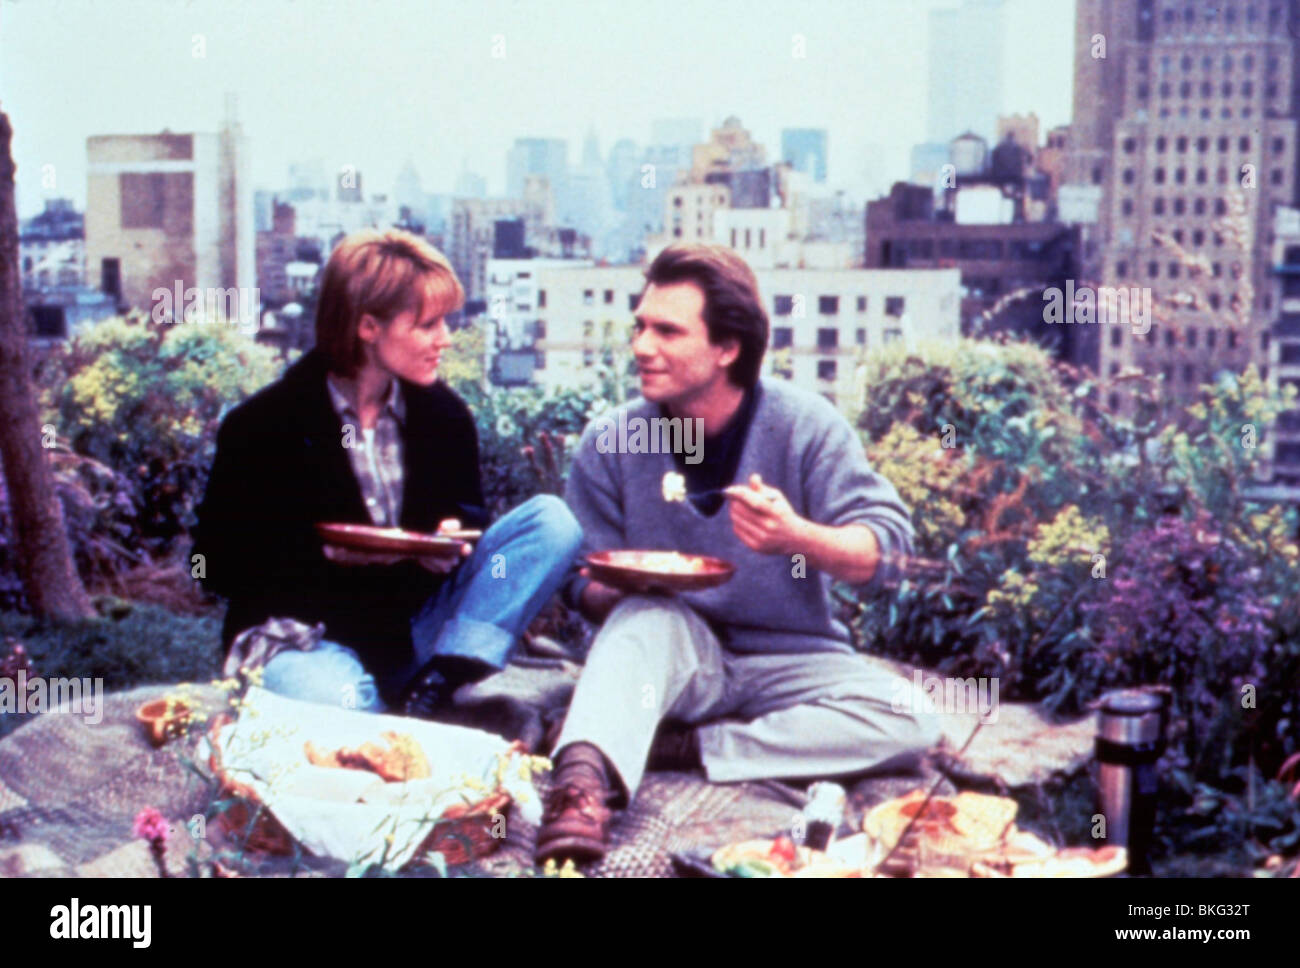 BED OF ROSES (1996) MARY STUART MASTERSON, CHRISTIAN SLATER BDRO 007 Stock Photo